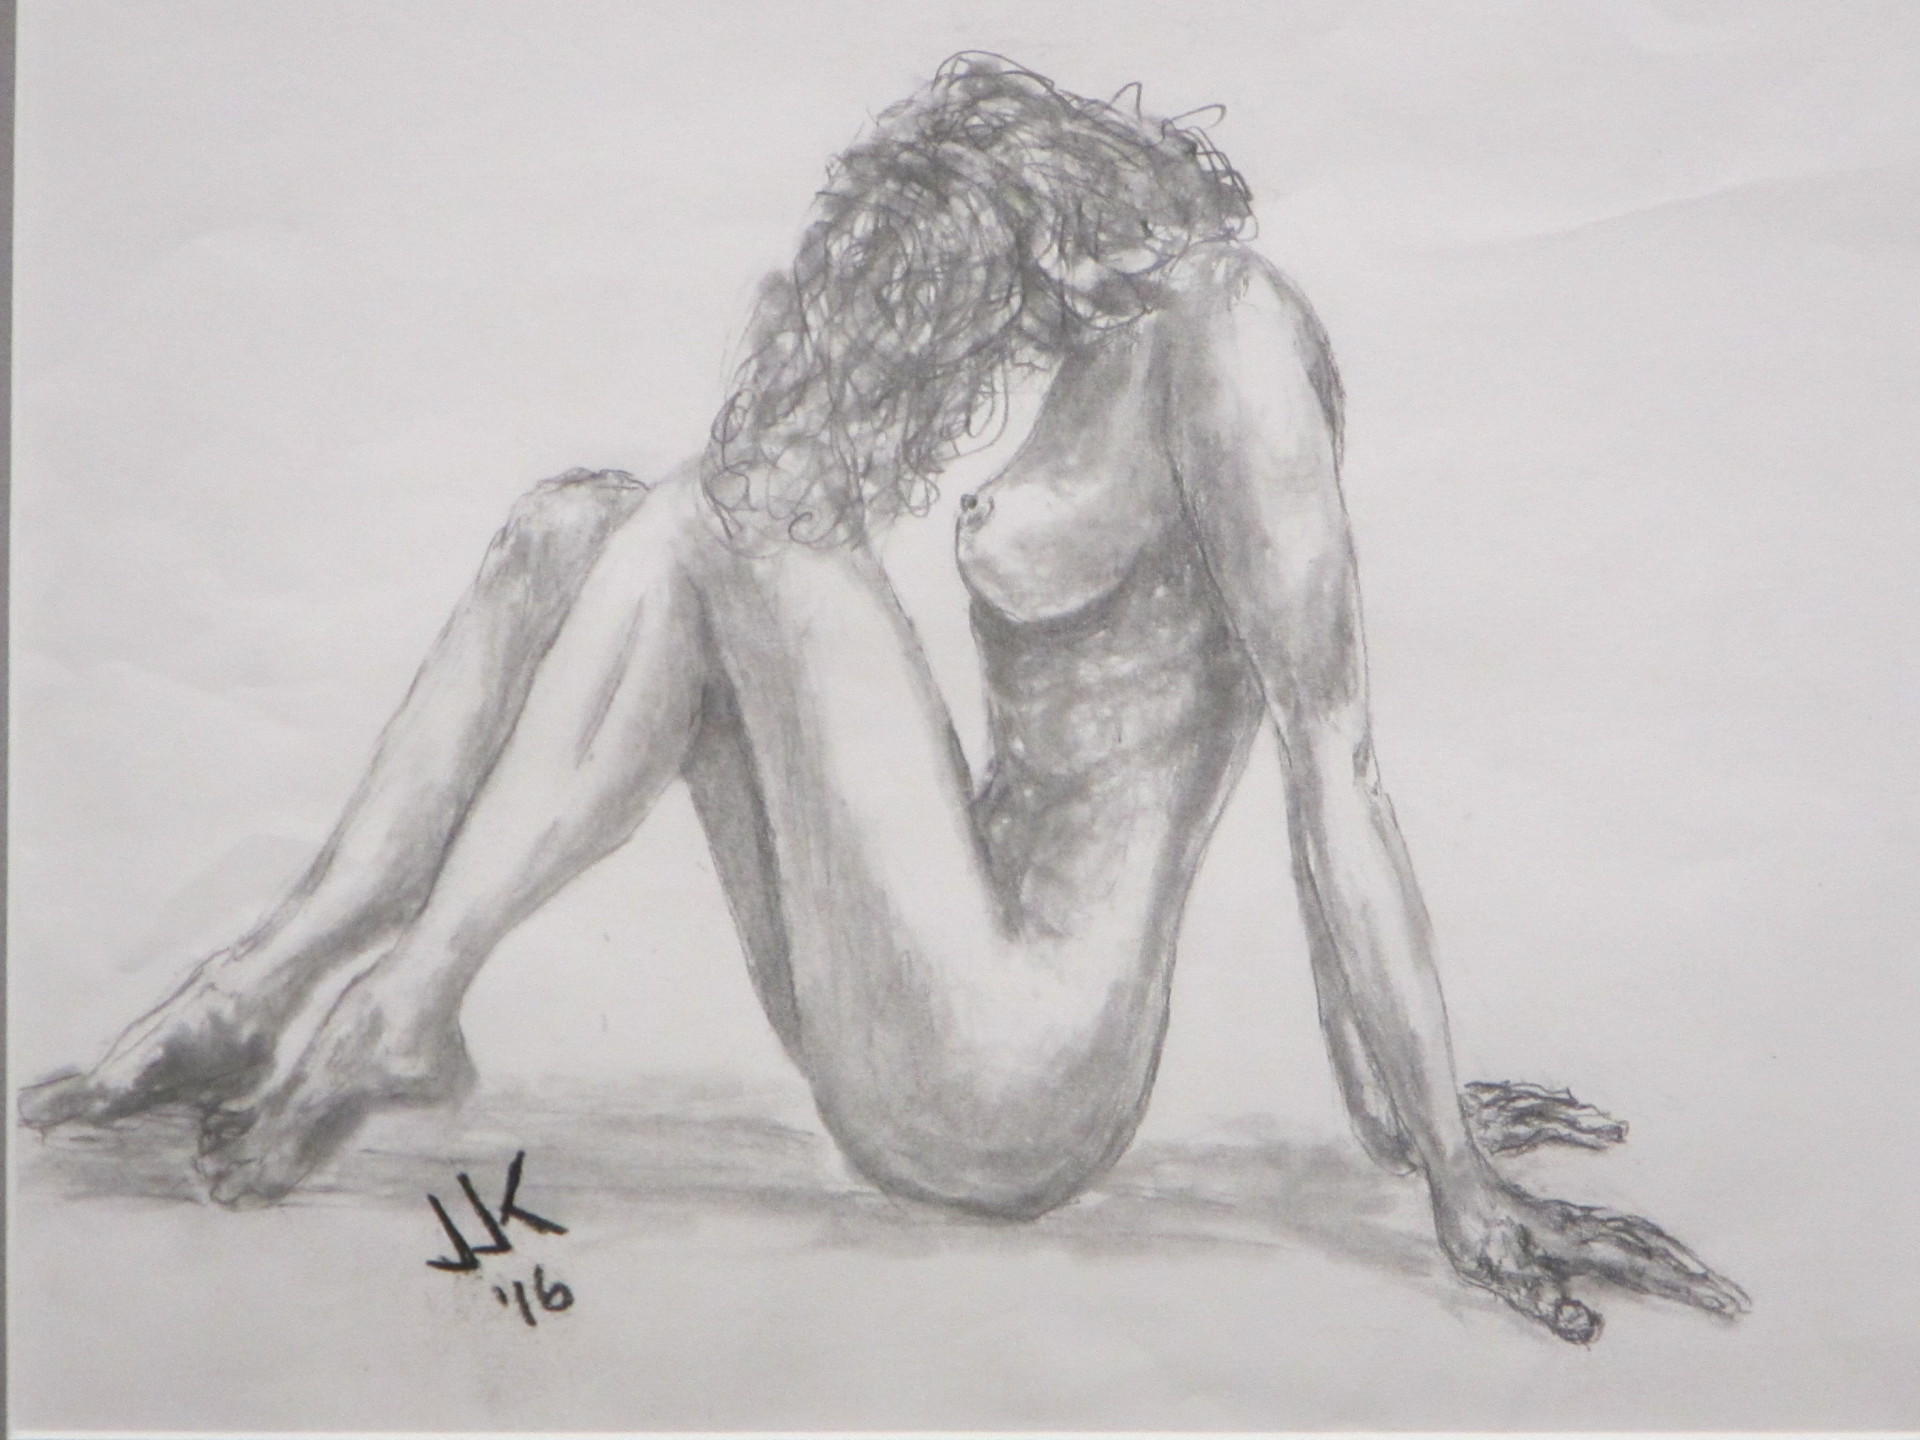 Pencil drawing of a nude woman sitting on the floor with her head forward and her hair over her face.